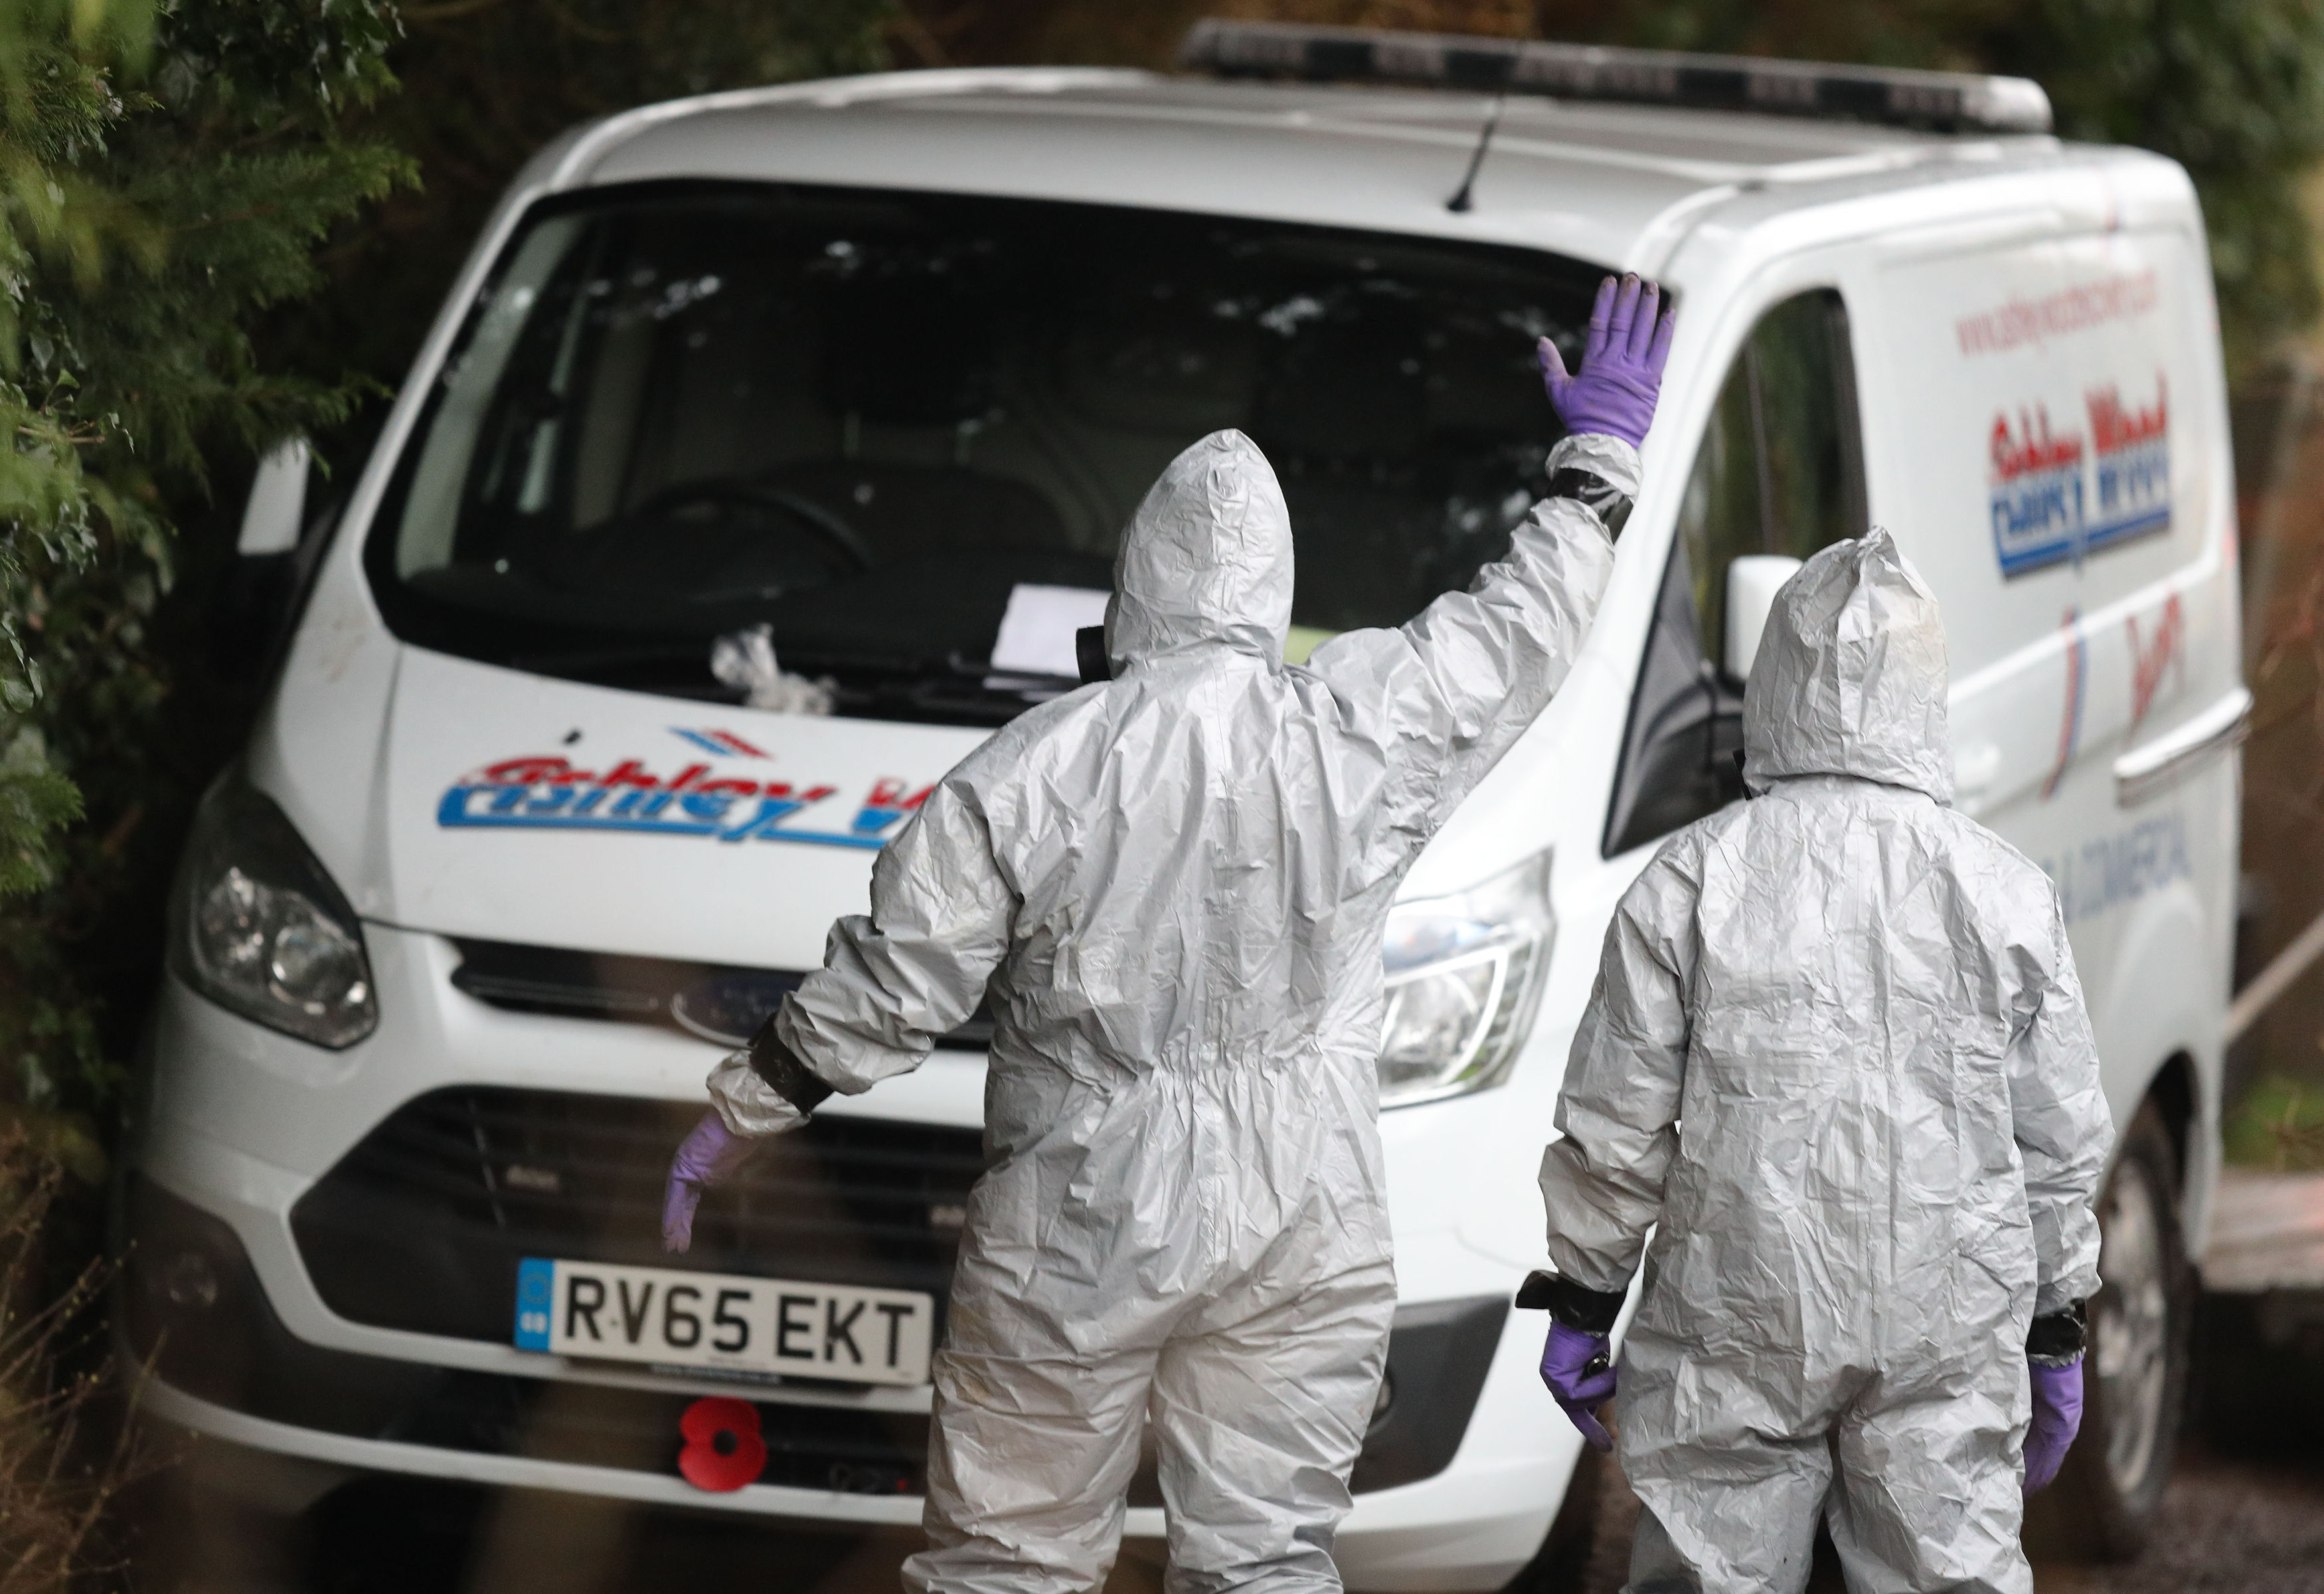 Chemical warfare teams sent to Salisbury to help in spy poison case